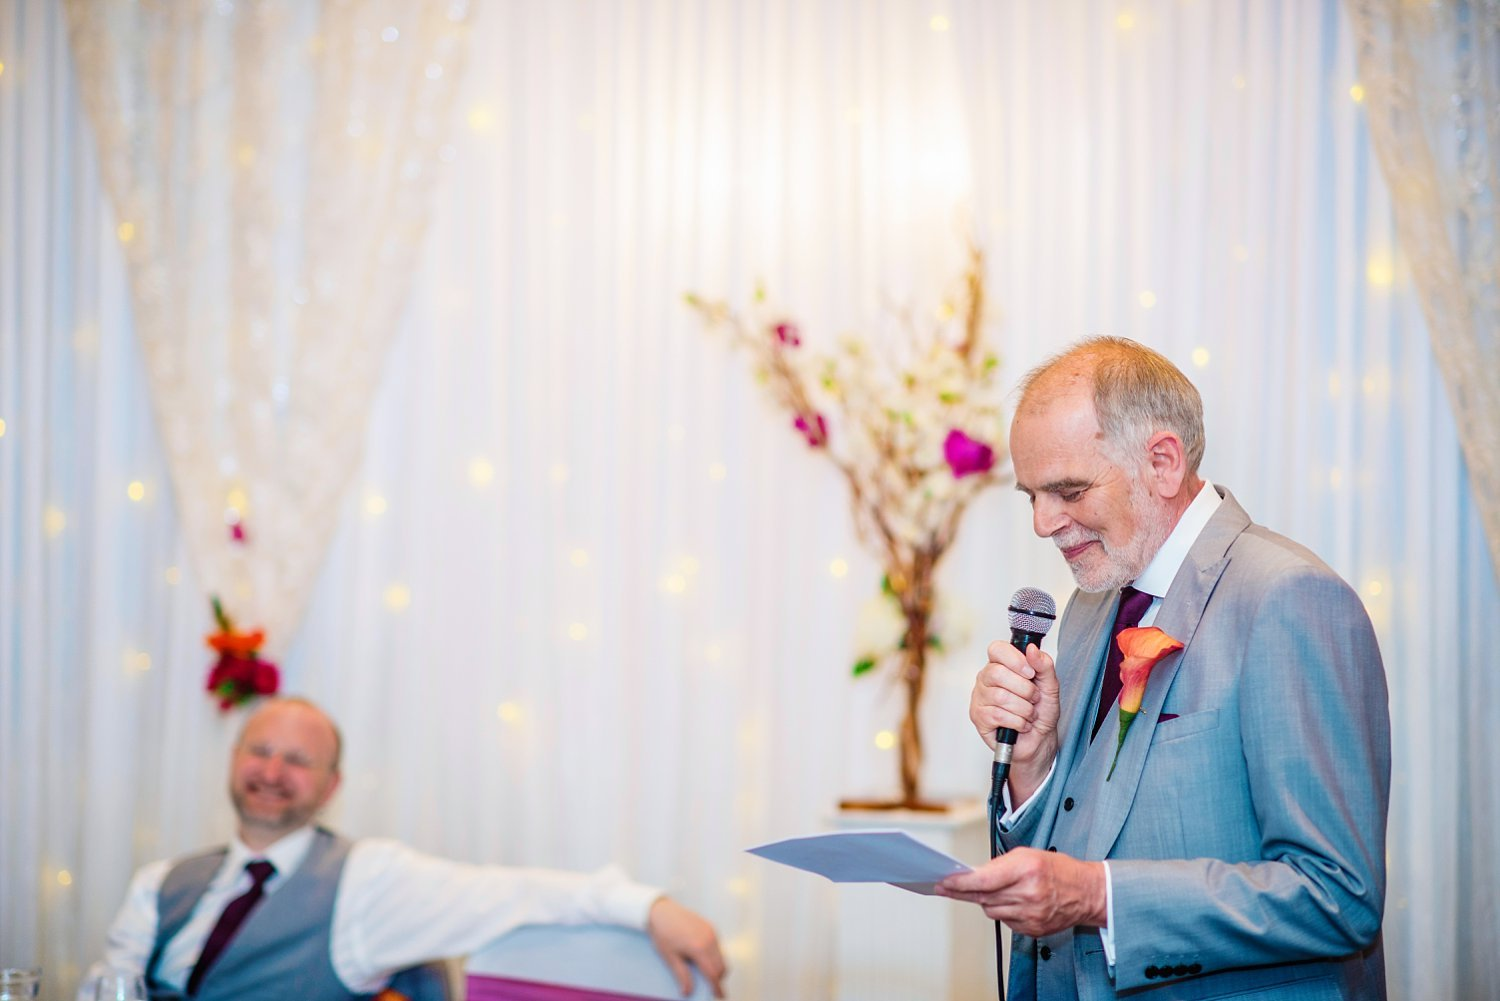 New Place Hotel Wedding - father of the bride's speech